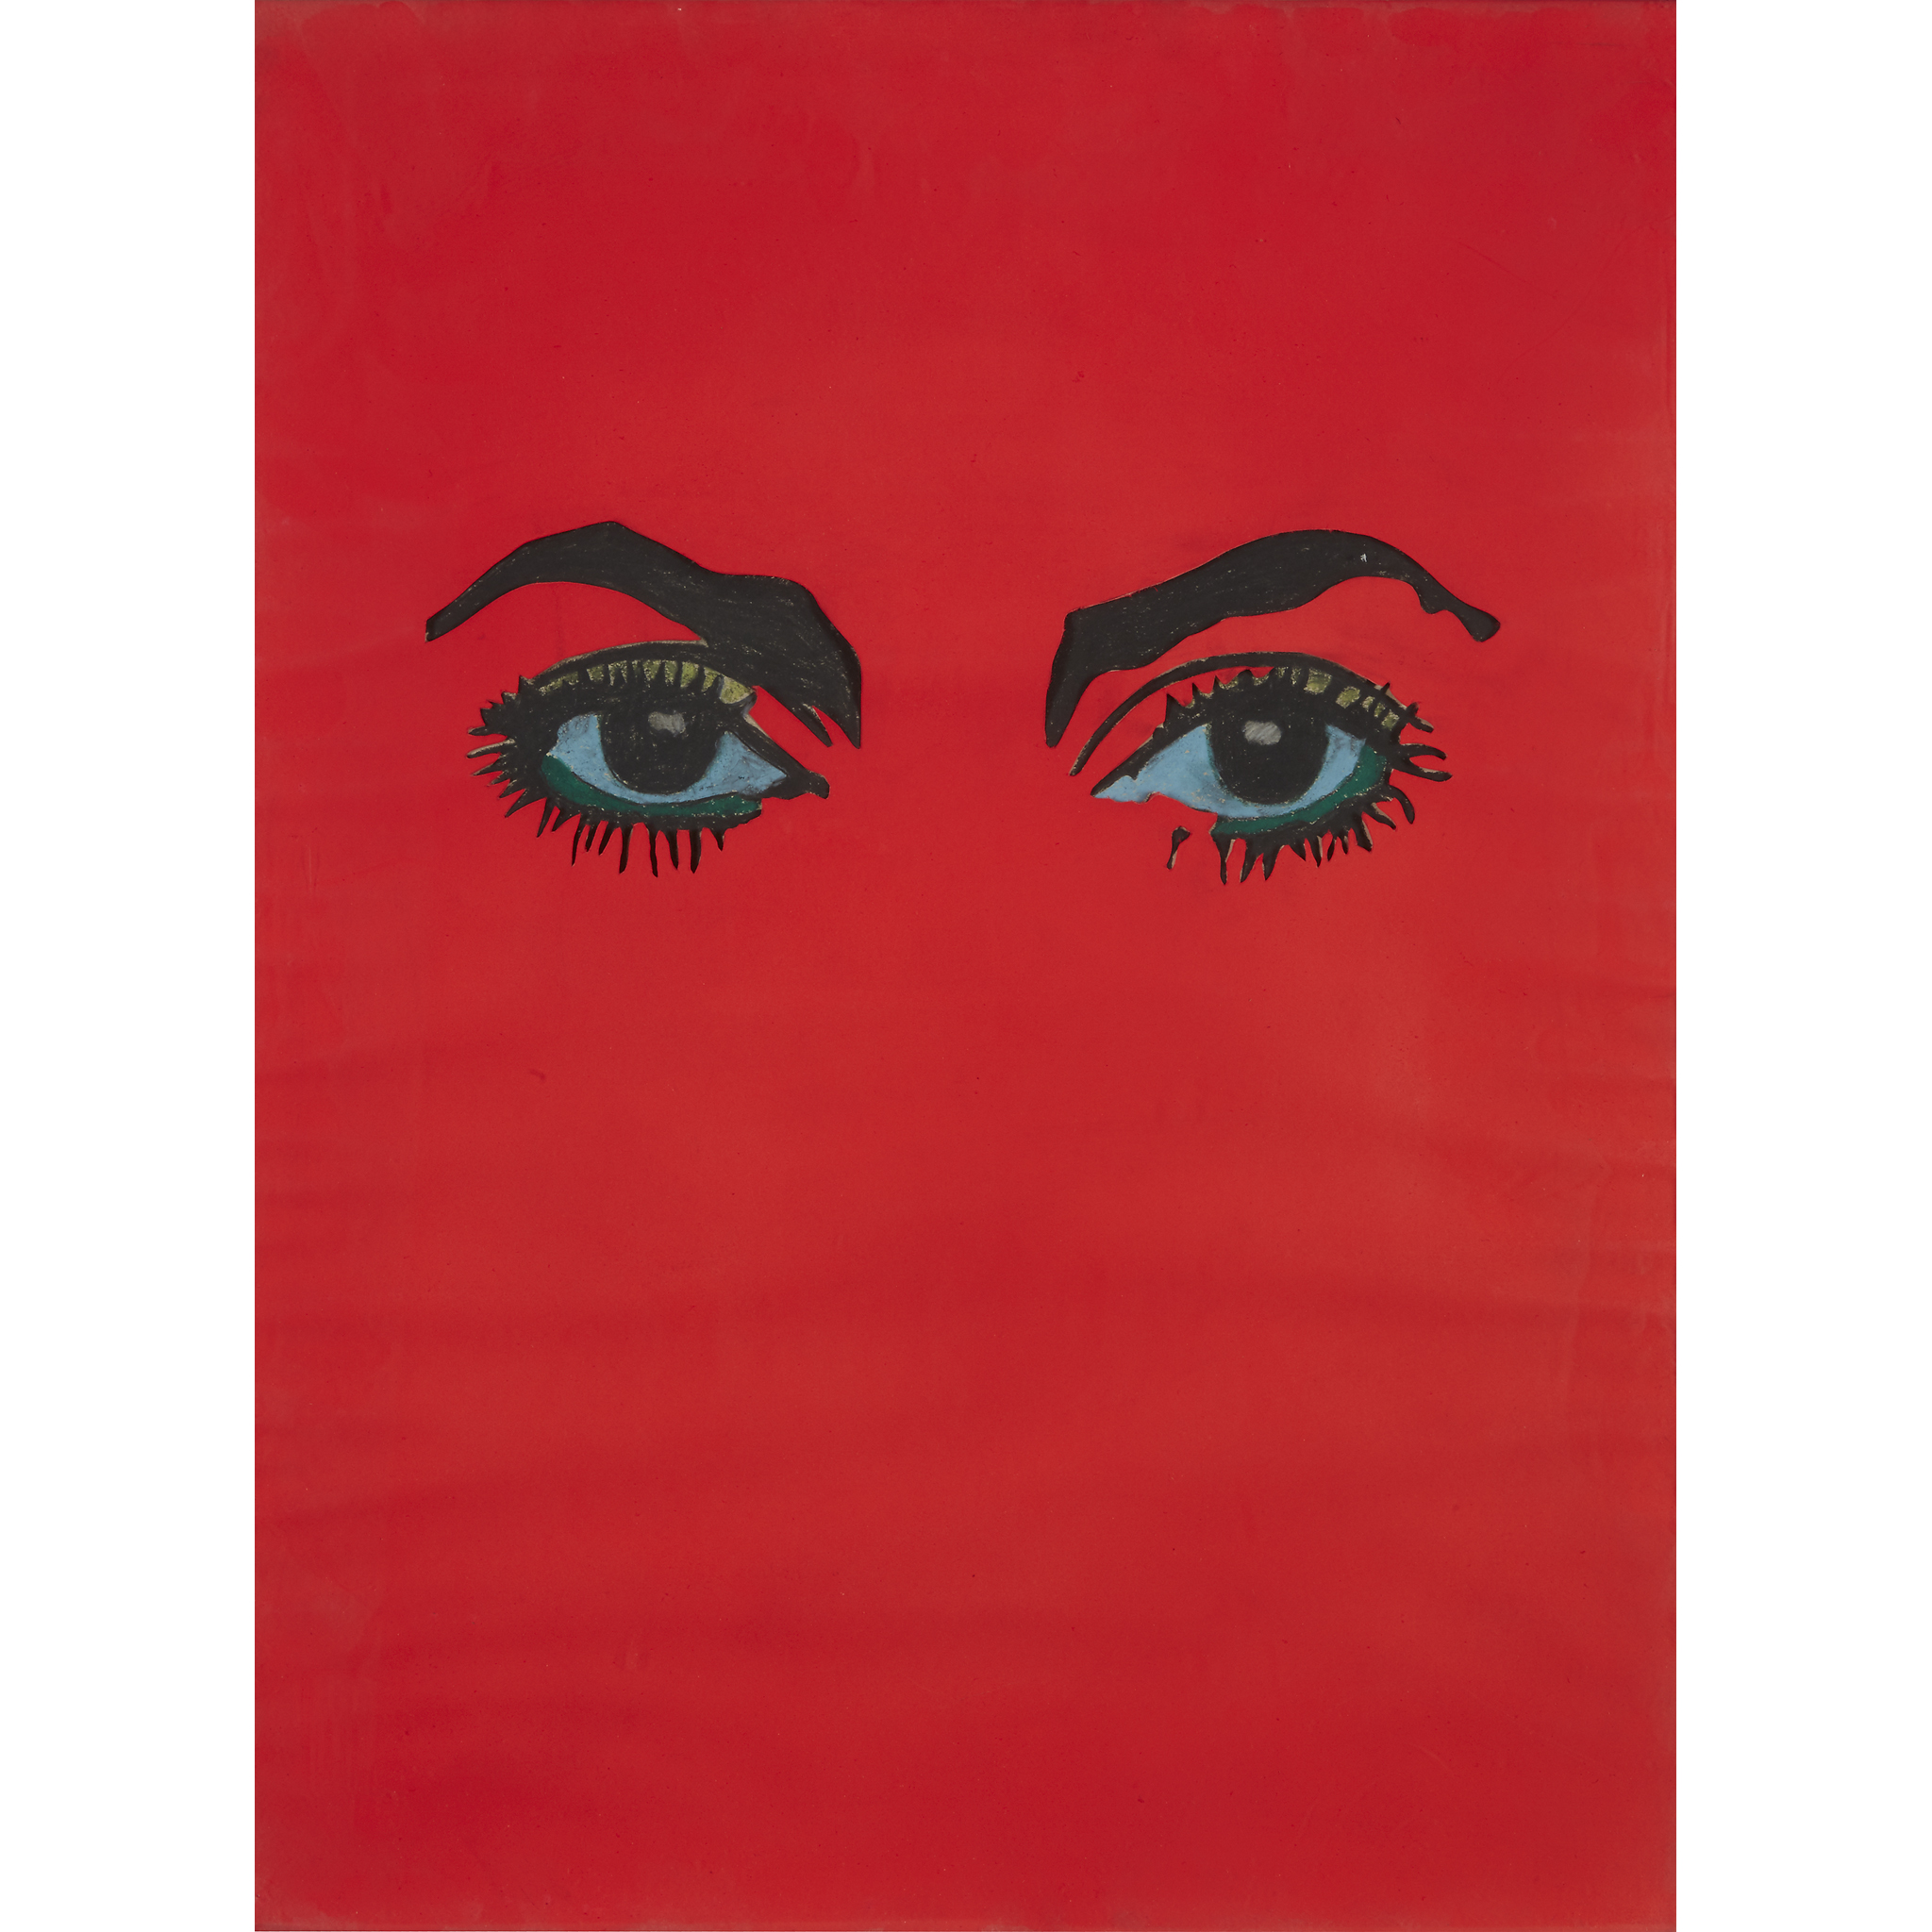 "UNTITLED (EYES), a 1963 mixed media collage by the French artist Martial Raysse. He inscribed it, ""To Stanley Bard Avec l'amitié de Martial Raysse (To Stanley Bard, with the friendship of Martial Raysse)."""